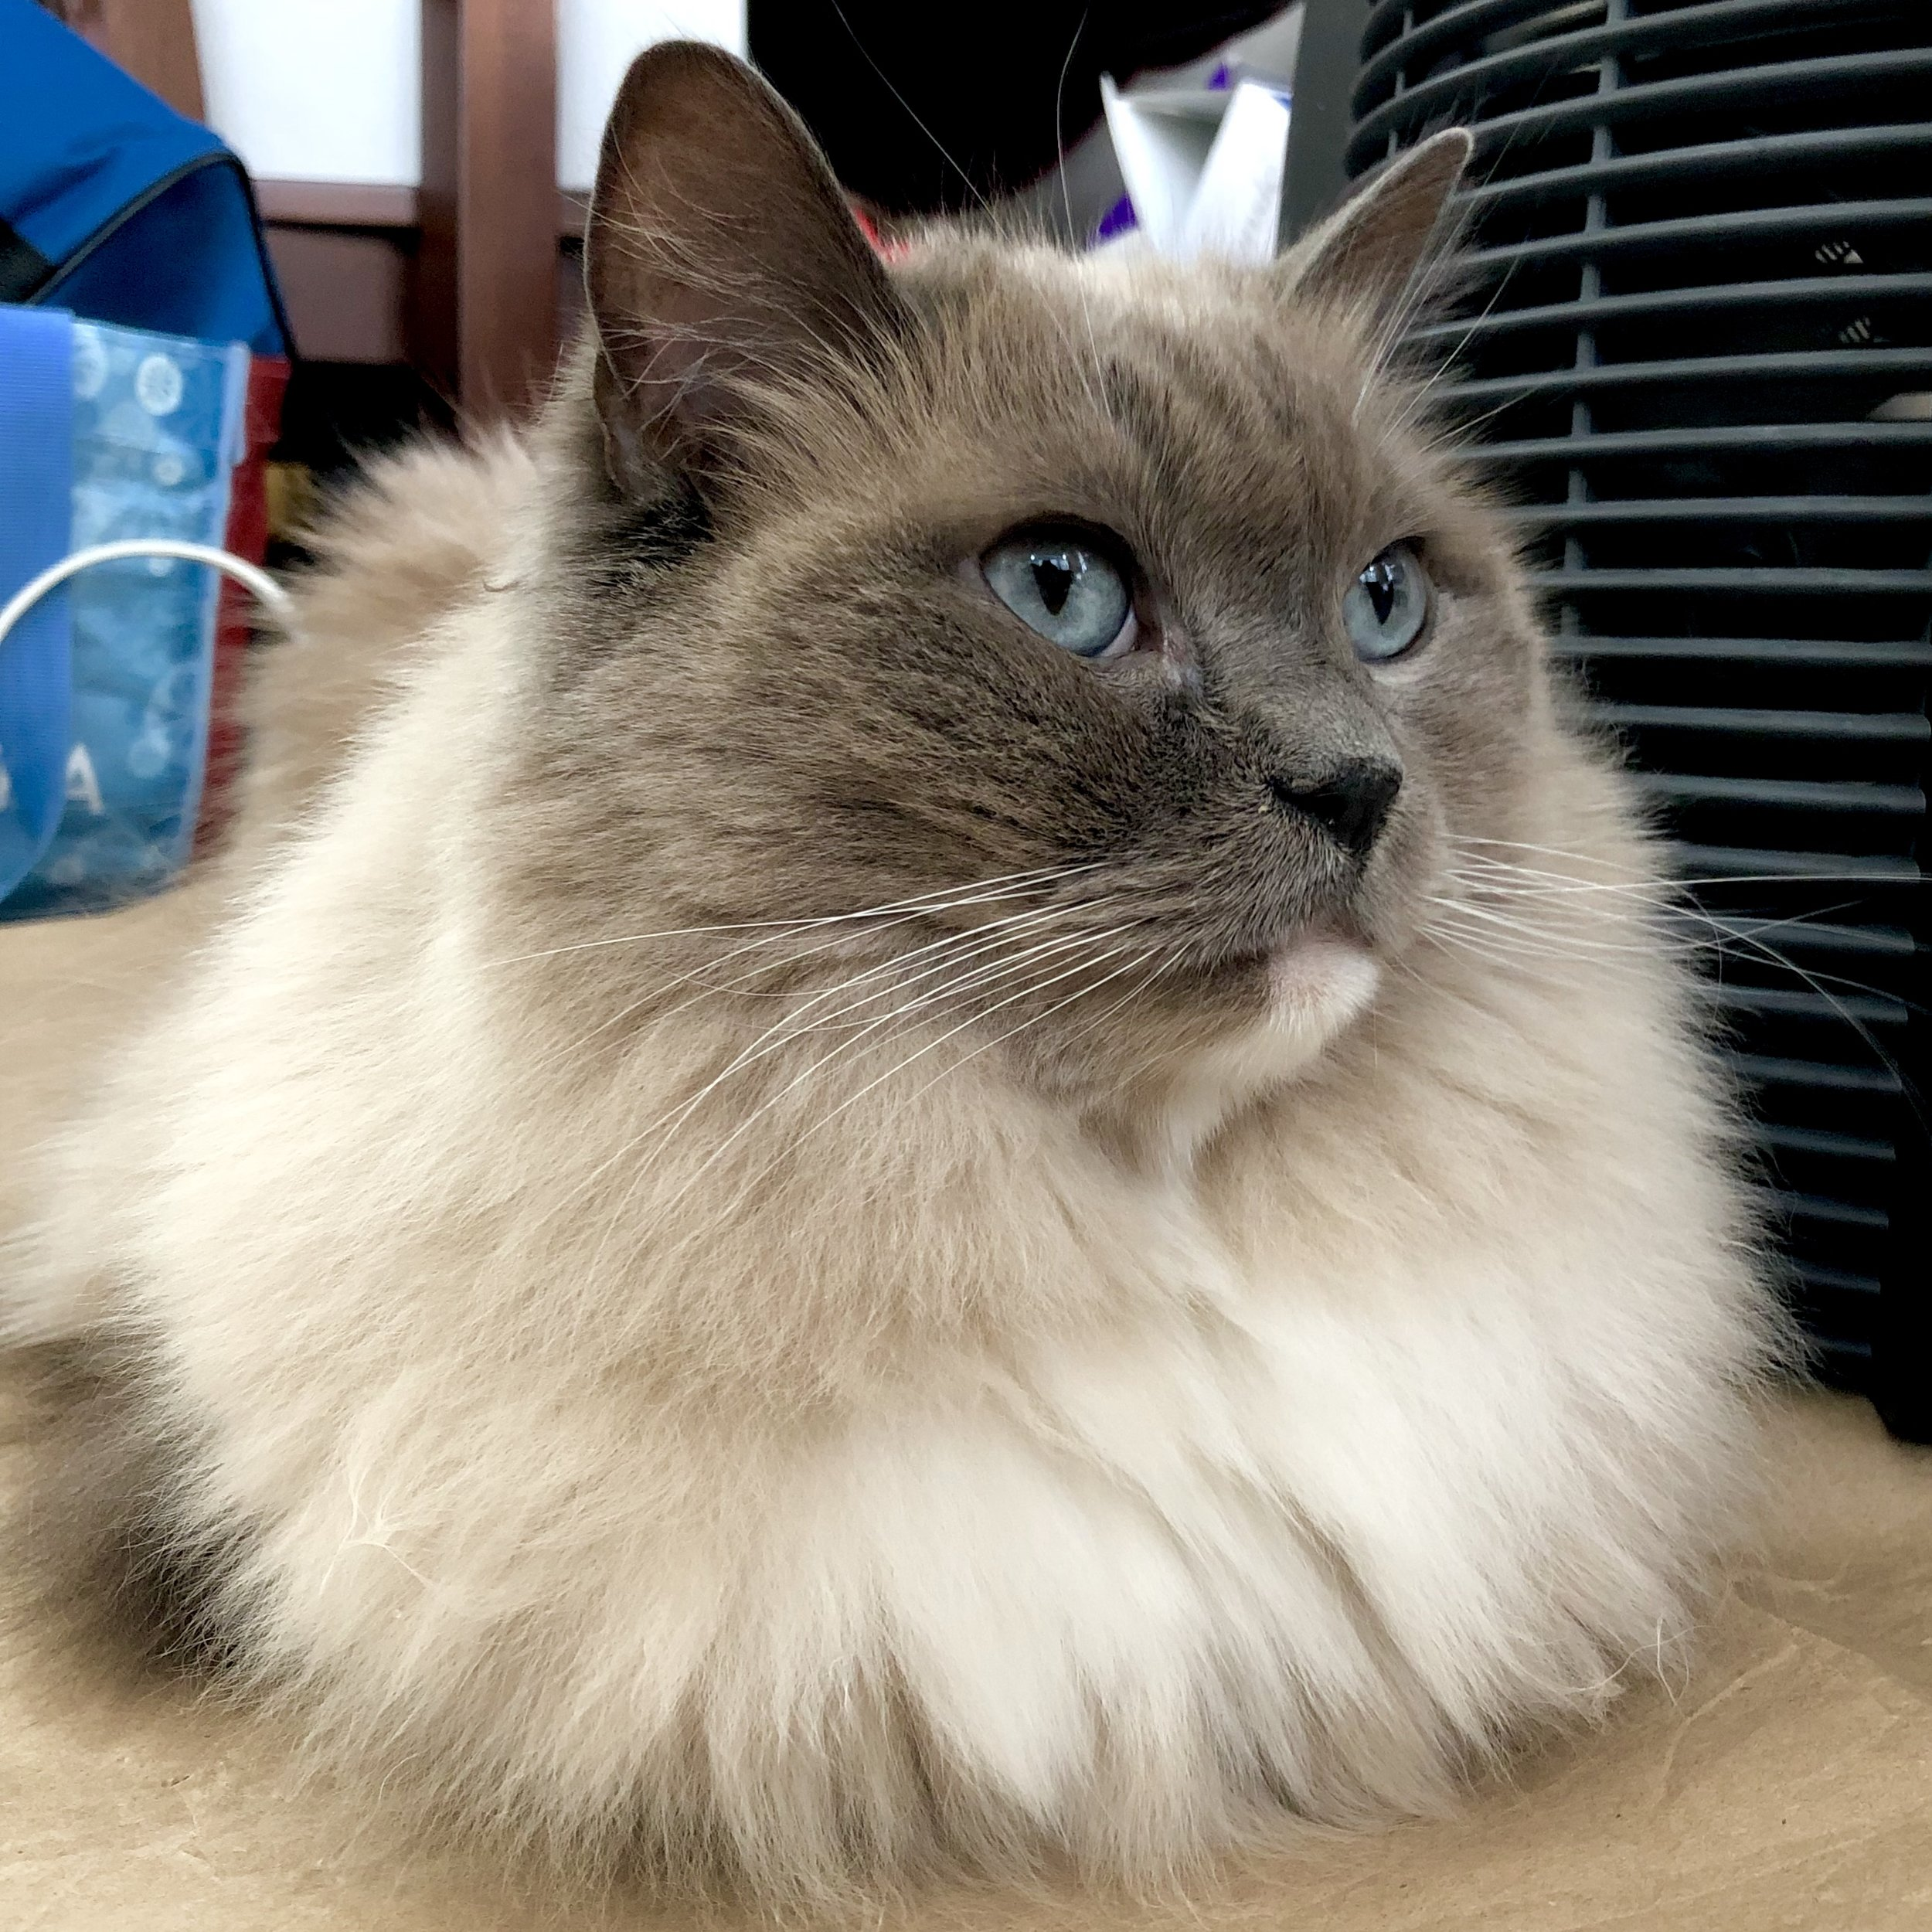 Chloe is a gorgeous little lady - just look at those beautiful blue eyes and that flowing fur! She is a welcoming conversationalist and loves attention. No need to pick her up but she would love to have a seat with you beside the area heater.